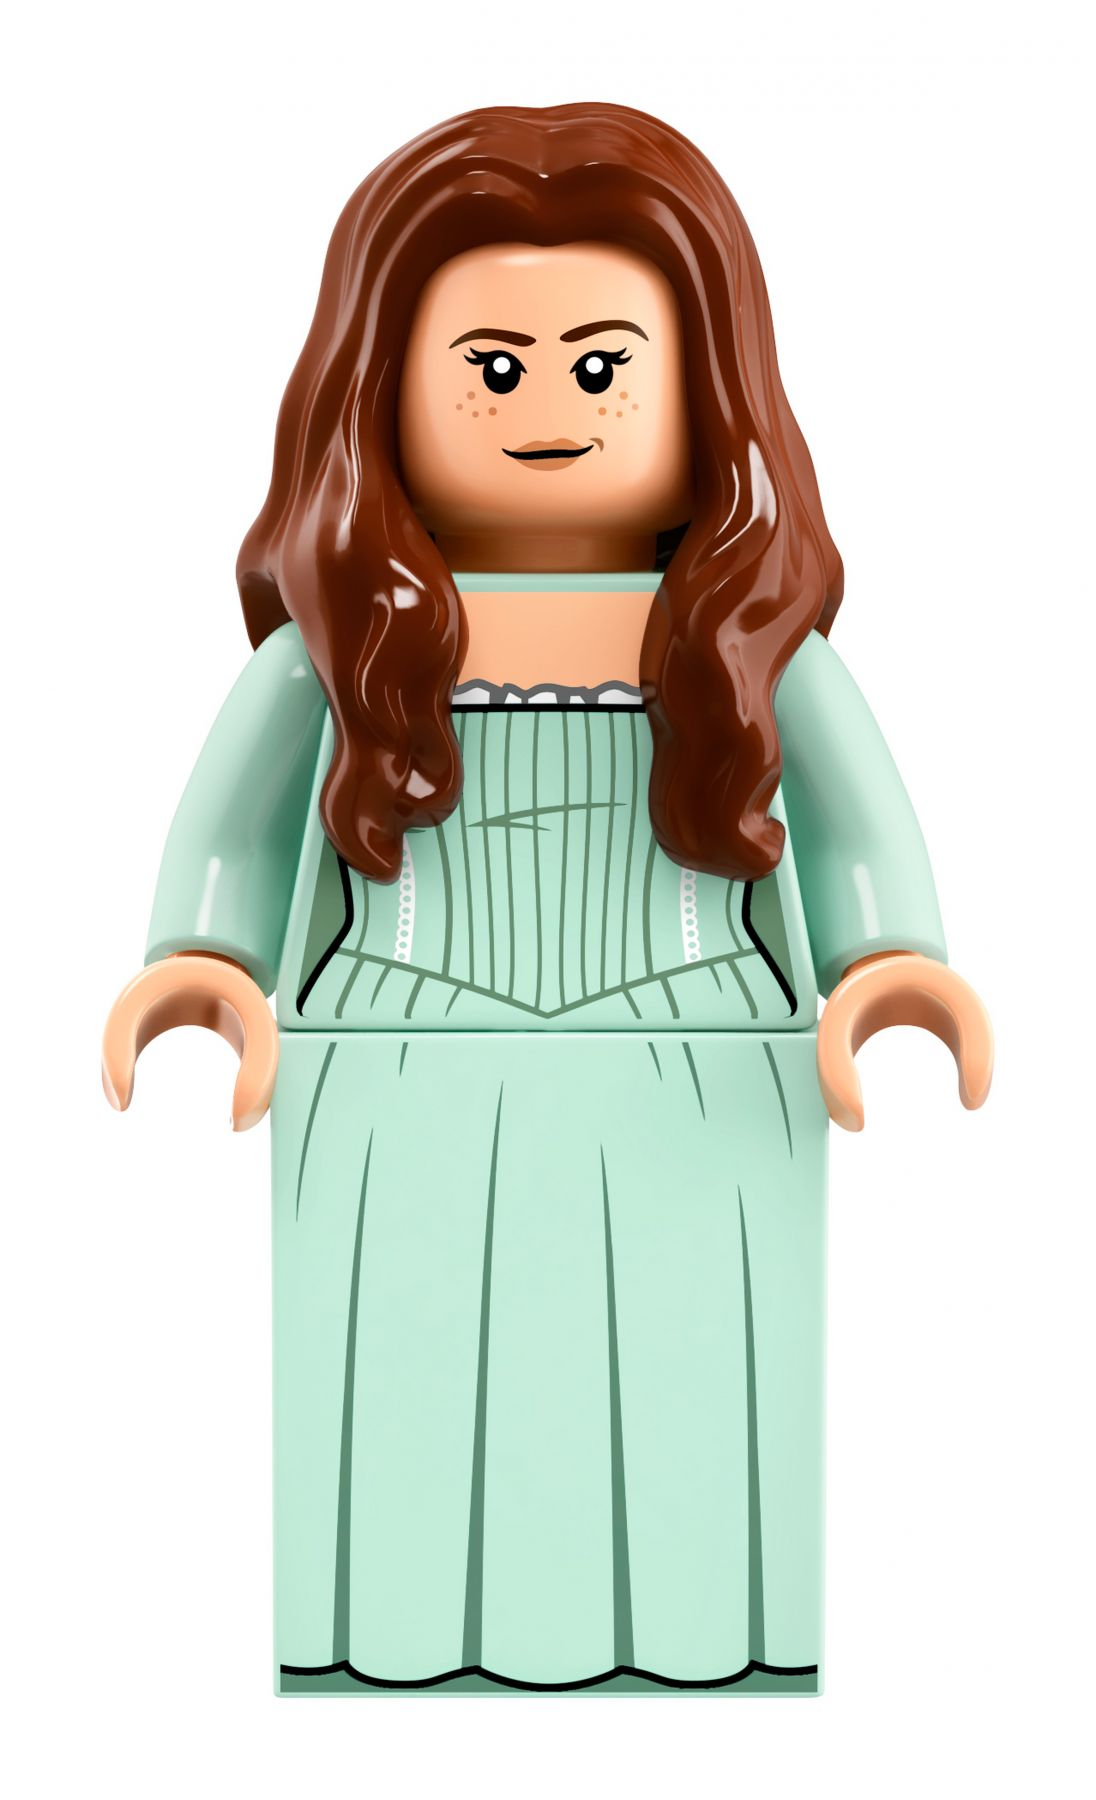 LEGO Advanced Models 71042 Silent Mary LEGO_71042_alt5.jpg